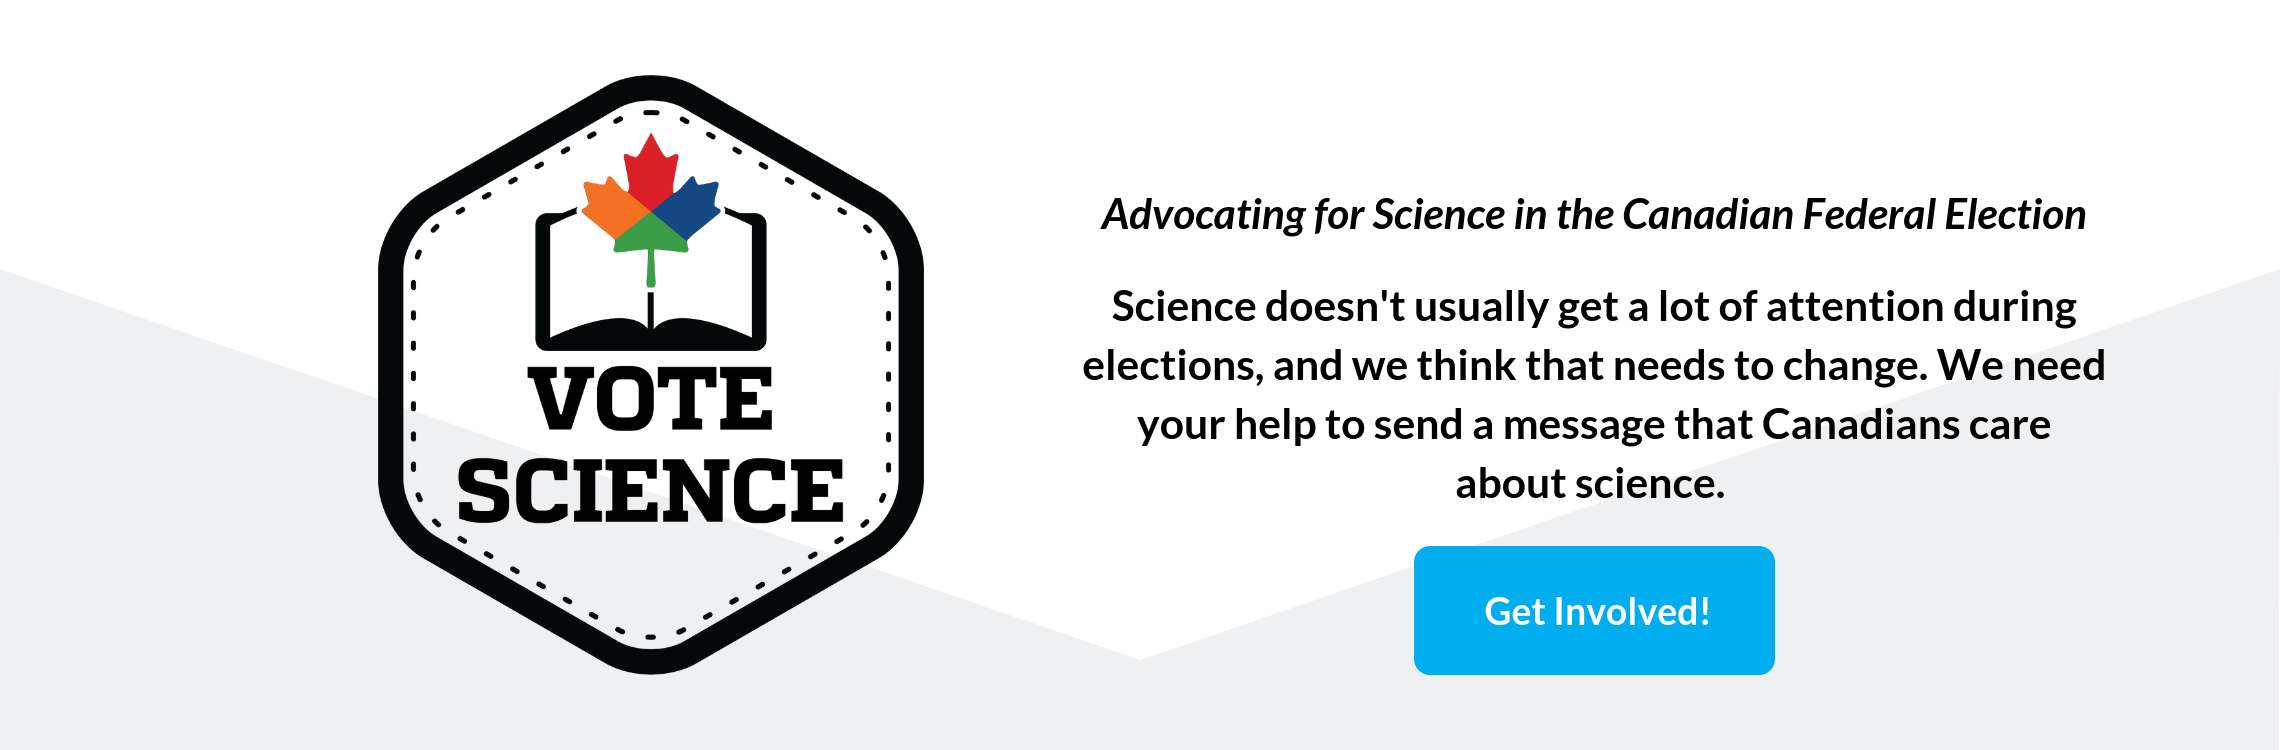 Vote Science - Get Involved!